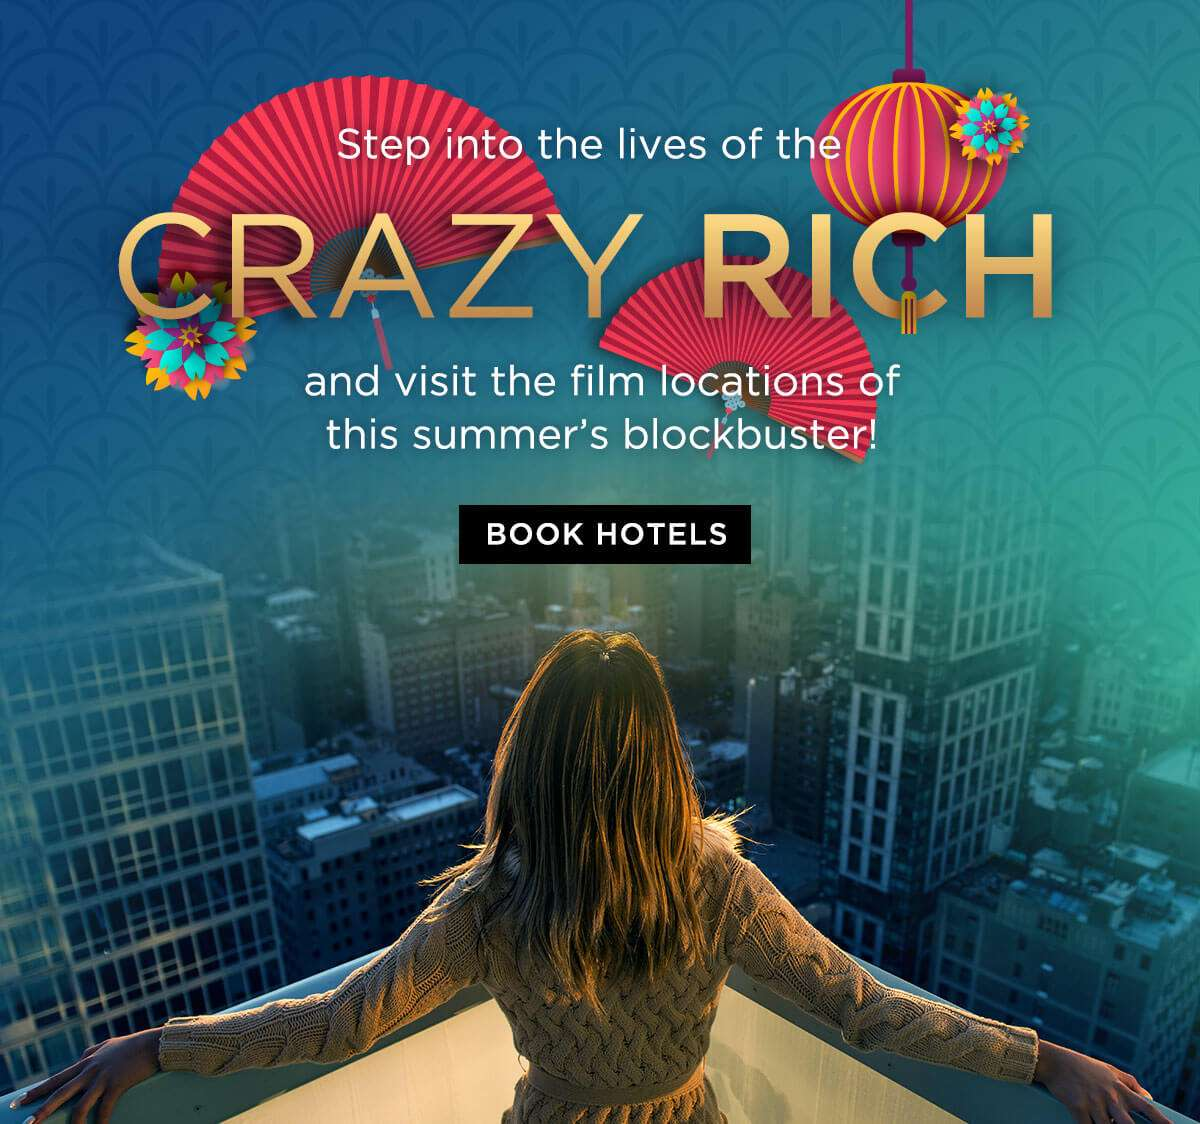 Step into the lives of the crazy rich and visit the film locations of this summer's blockbuster!